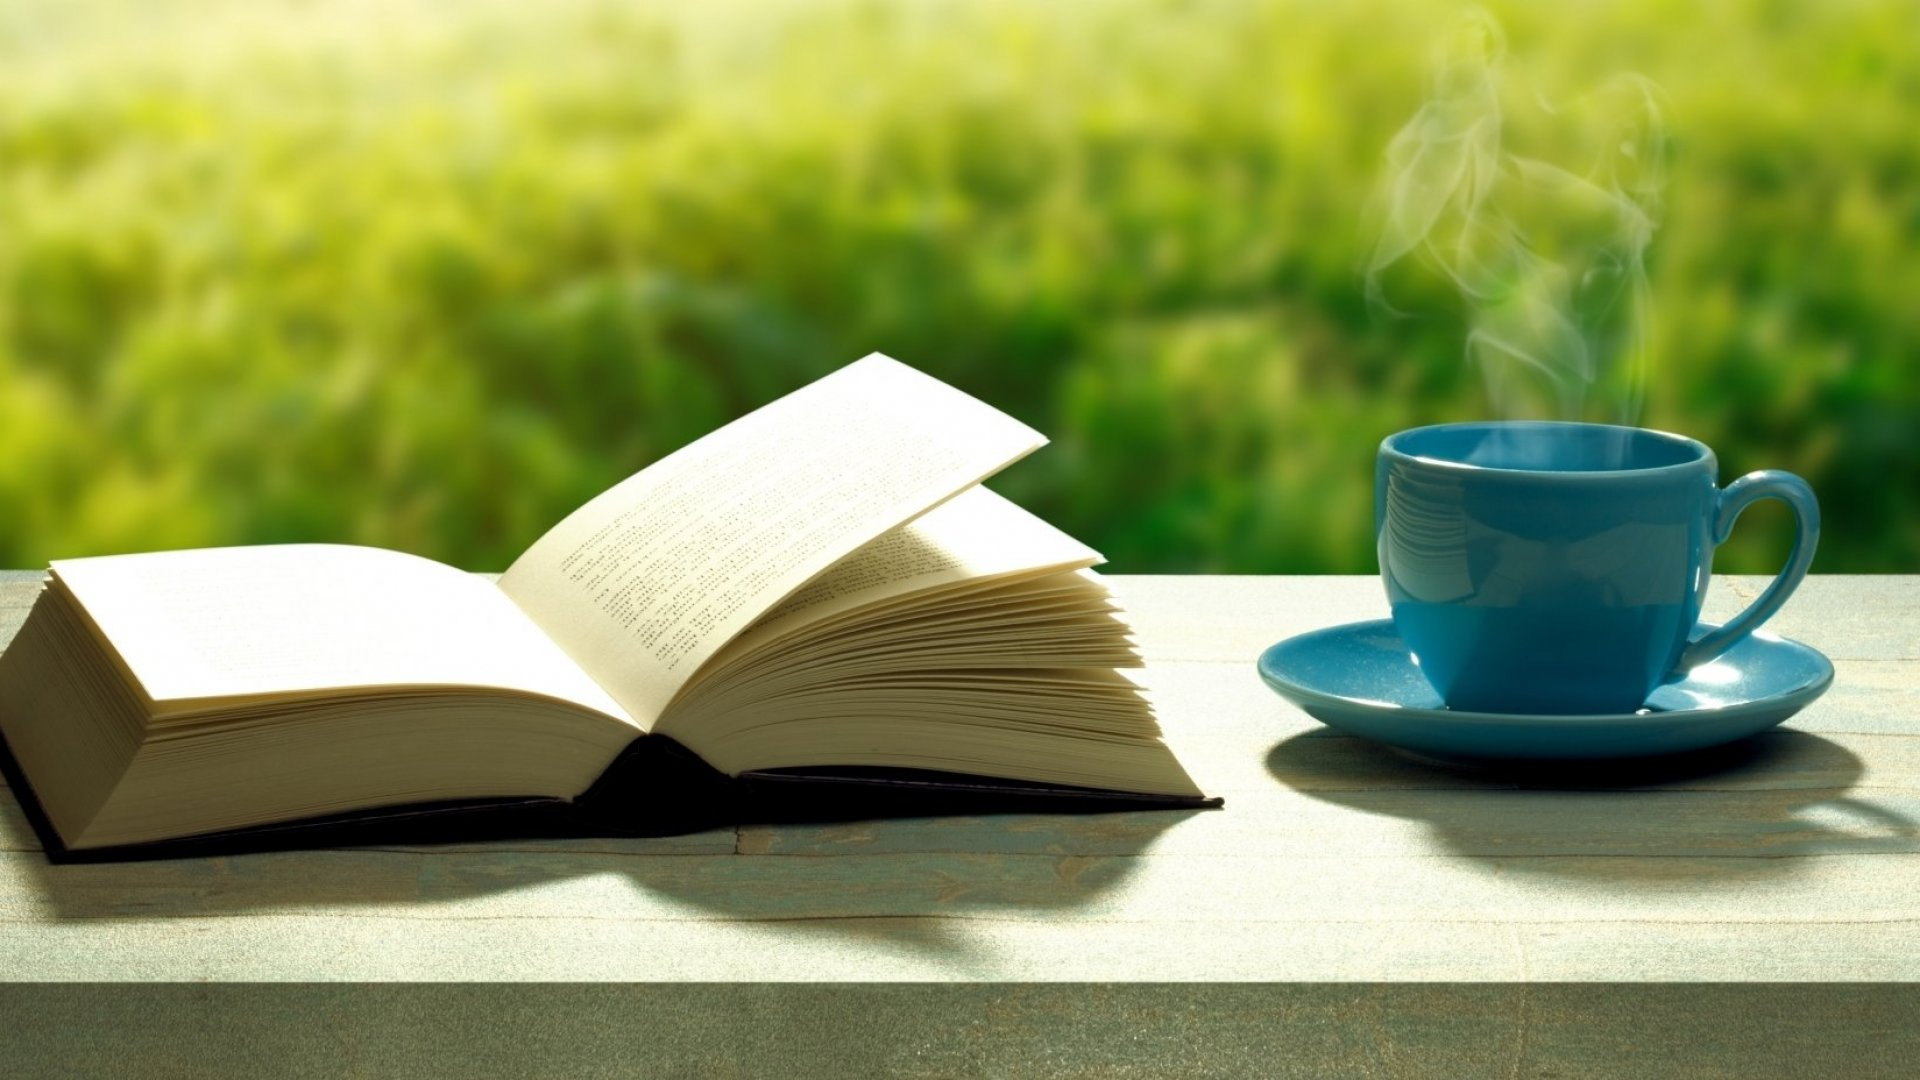 Here are 19 Inspirational Books for Your Nightstand